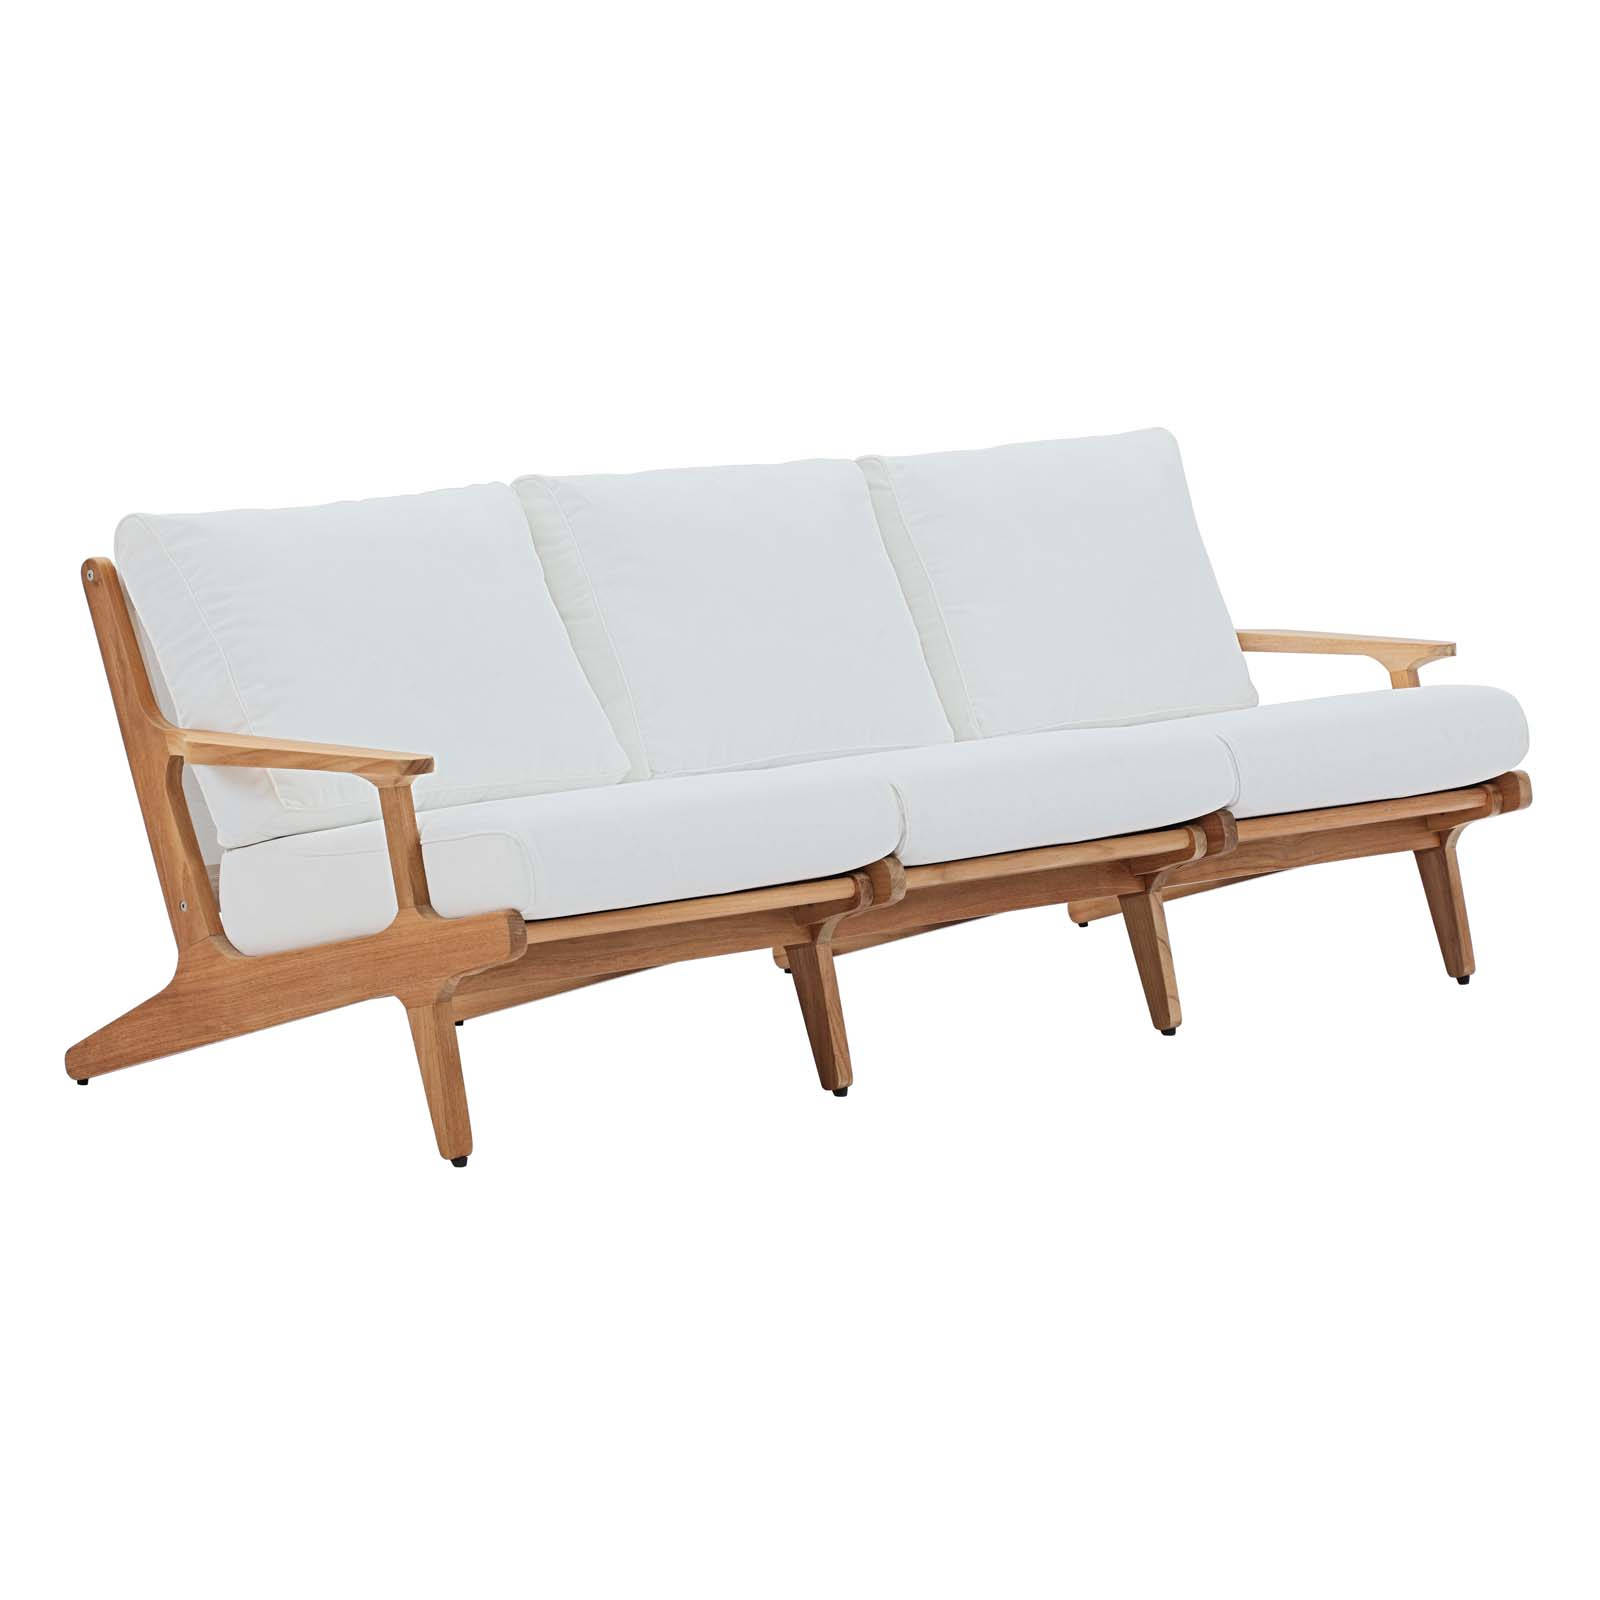 Modway Furniture Saratoga White Outdoor Patio Teak Sofa The Classy